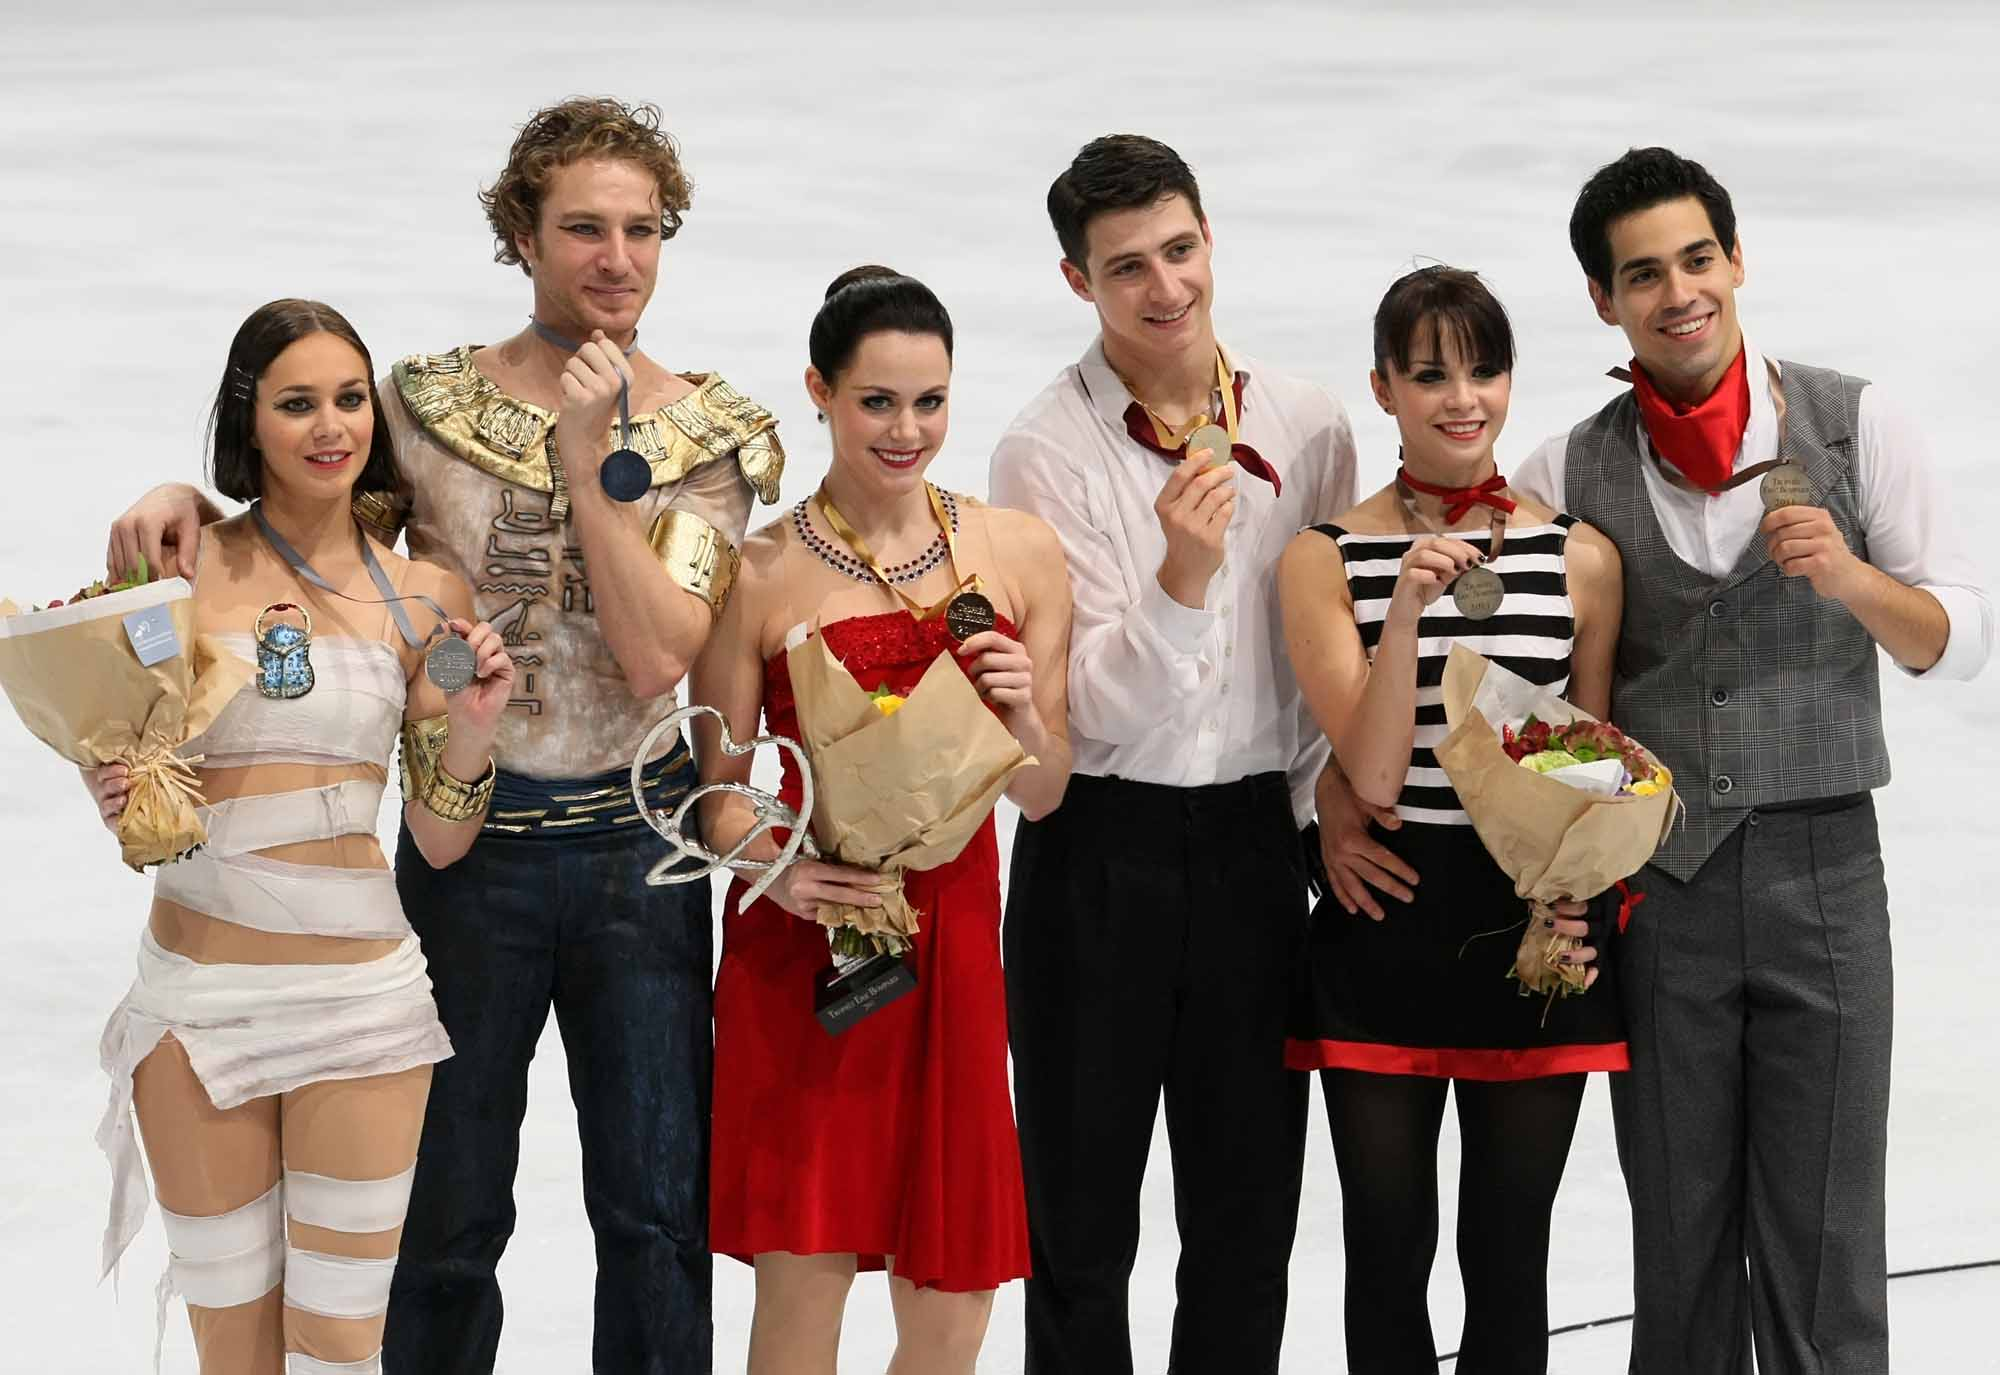 Medalists in ice dance